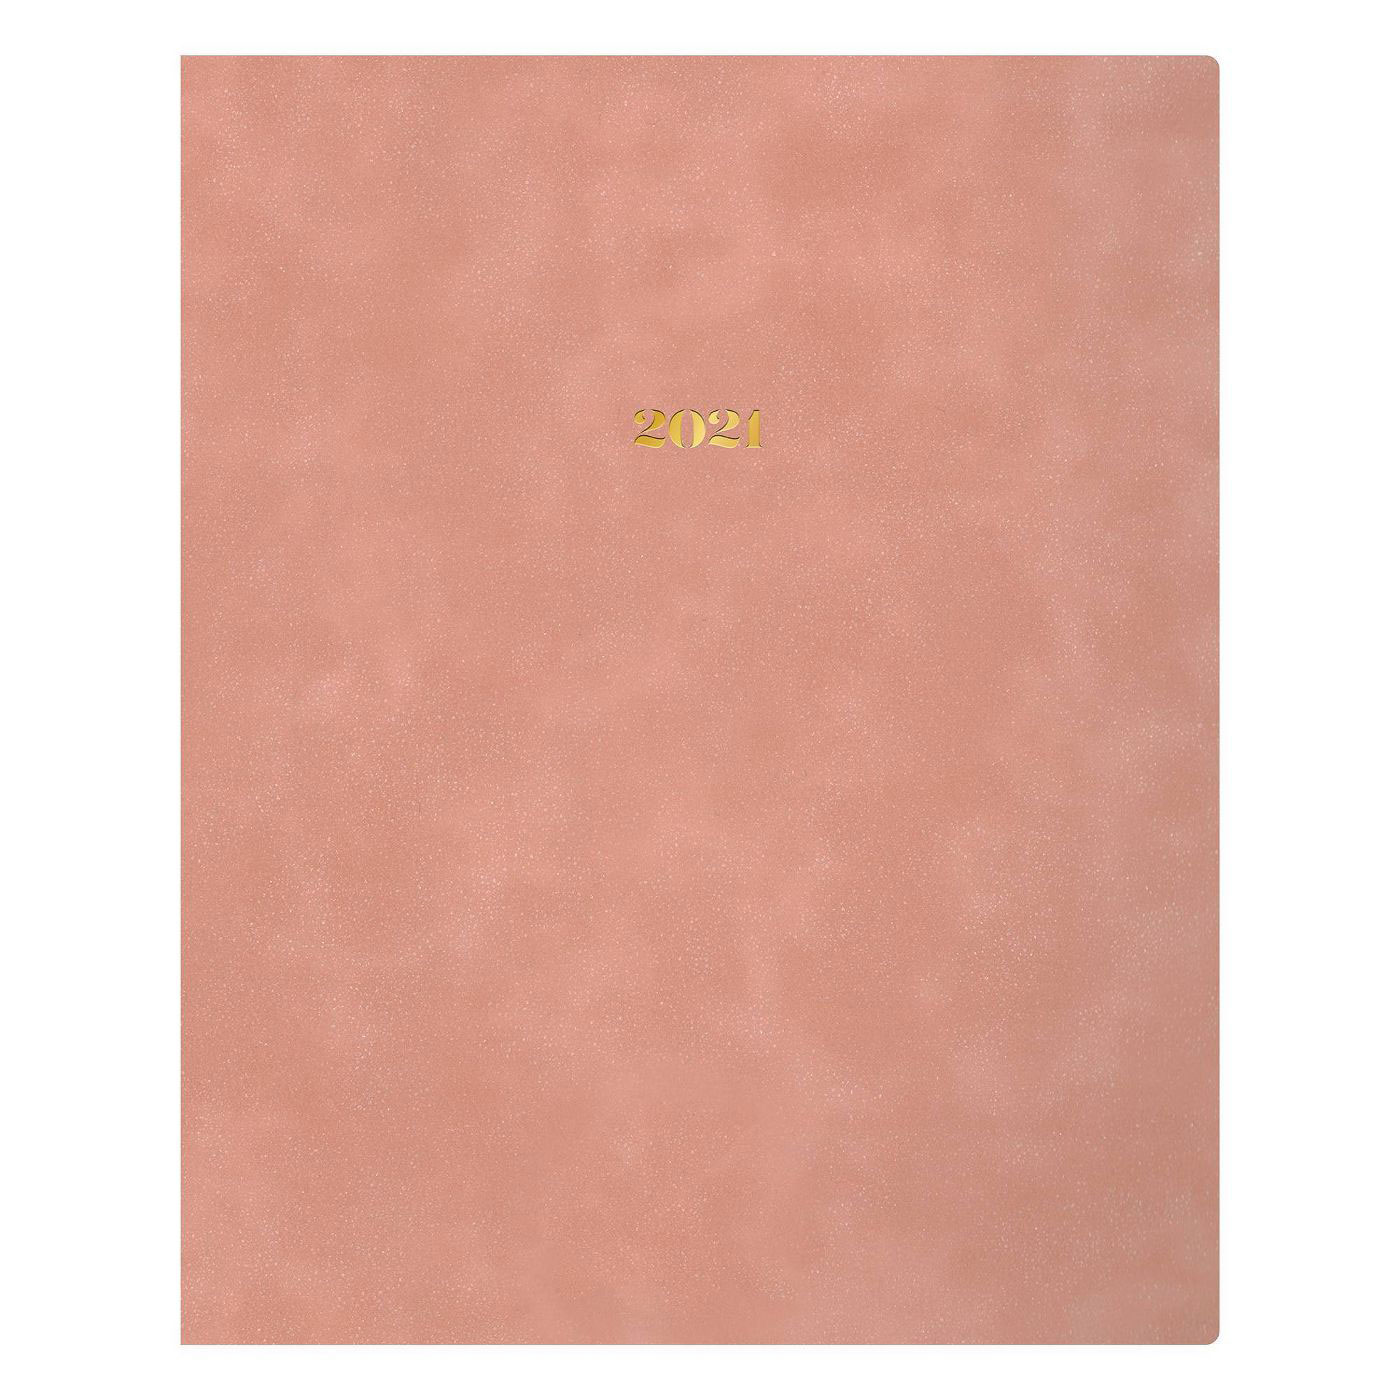 Best planners 2021 - The Everygirl Planner in Faux Leather